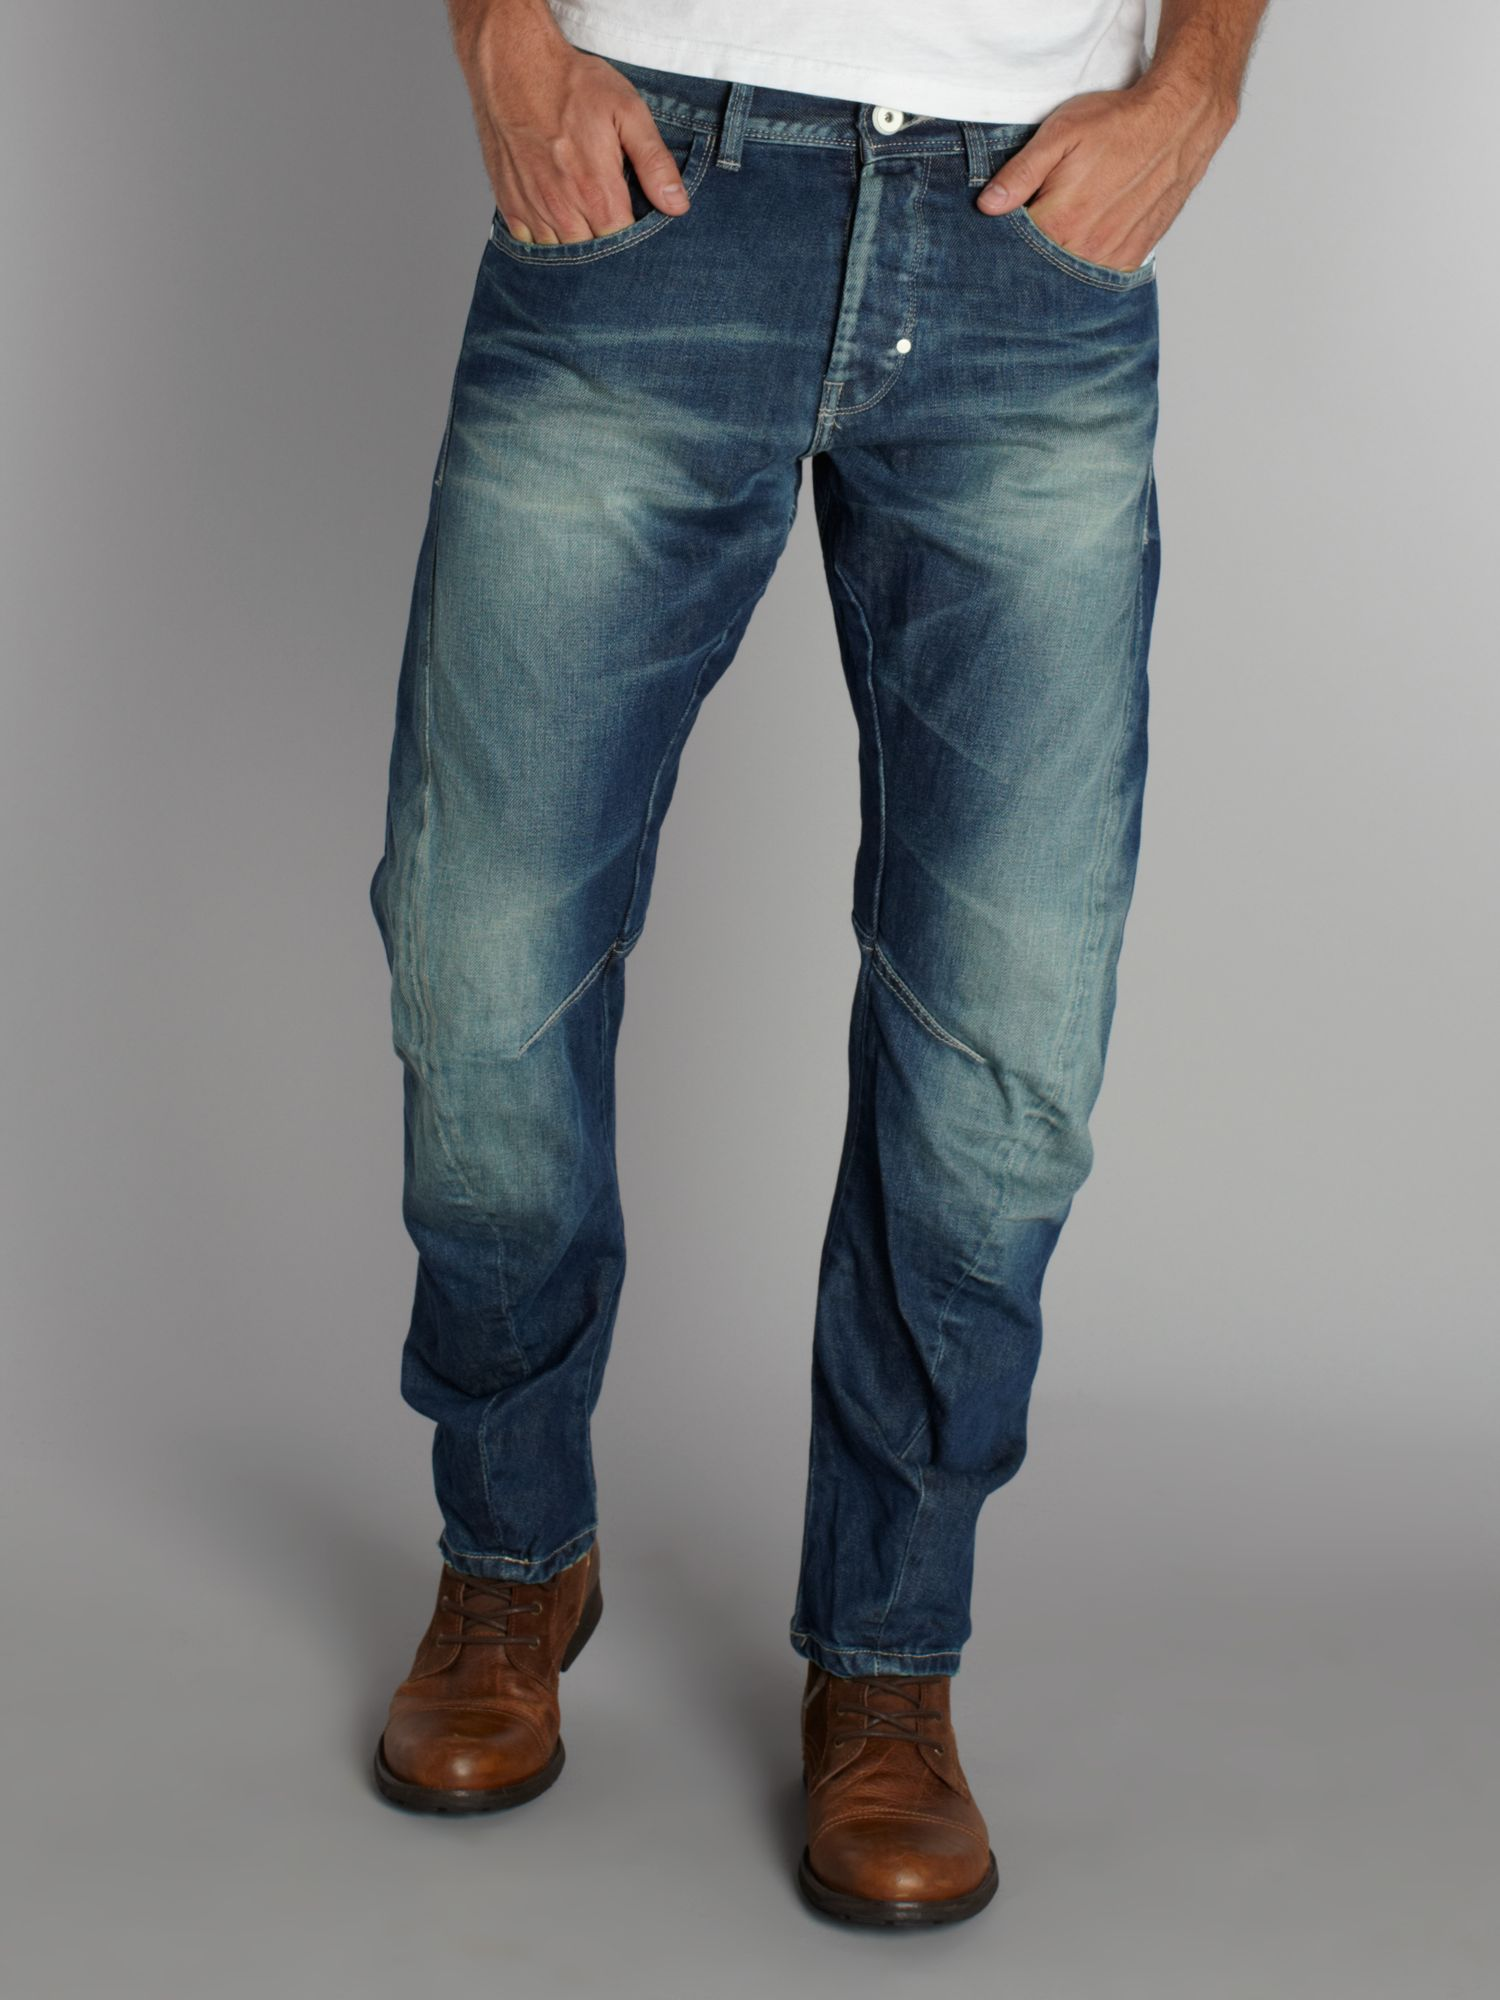 Dale road twist SC507 mid wash jeans